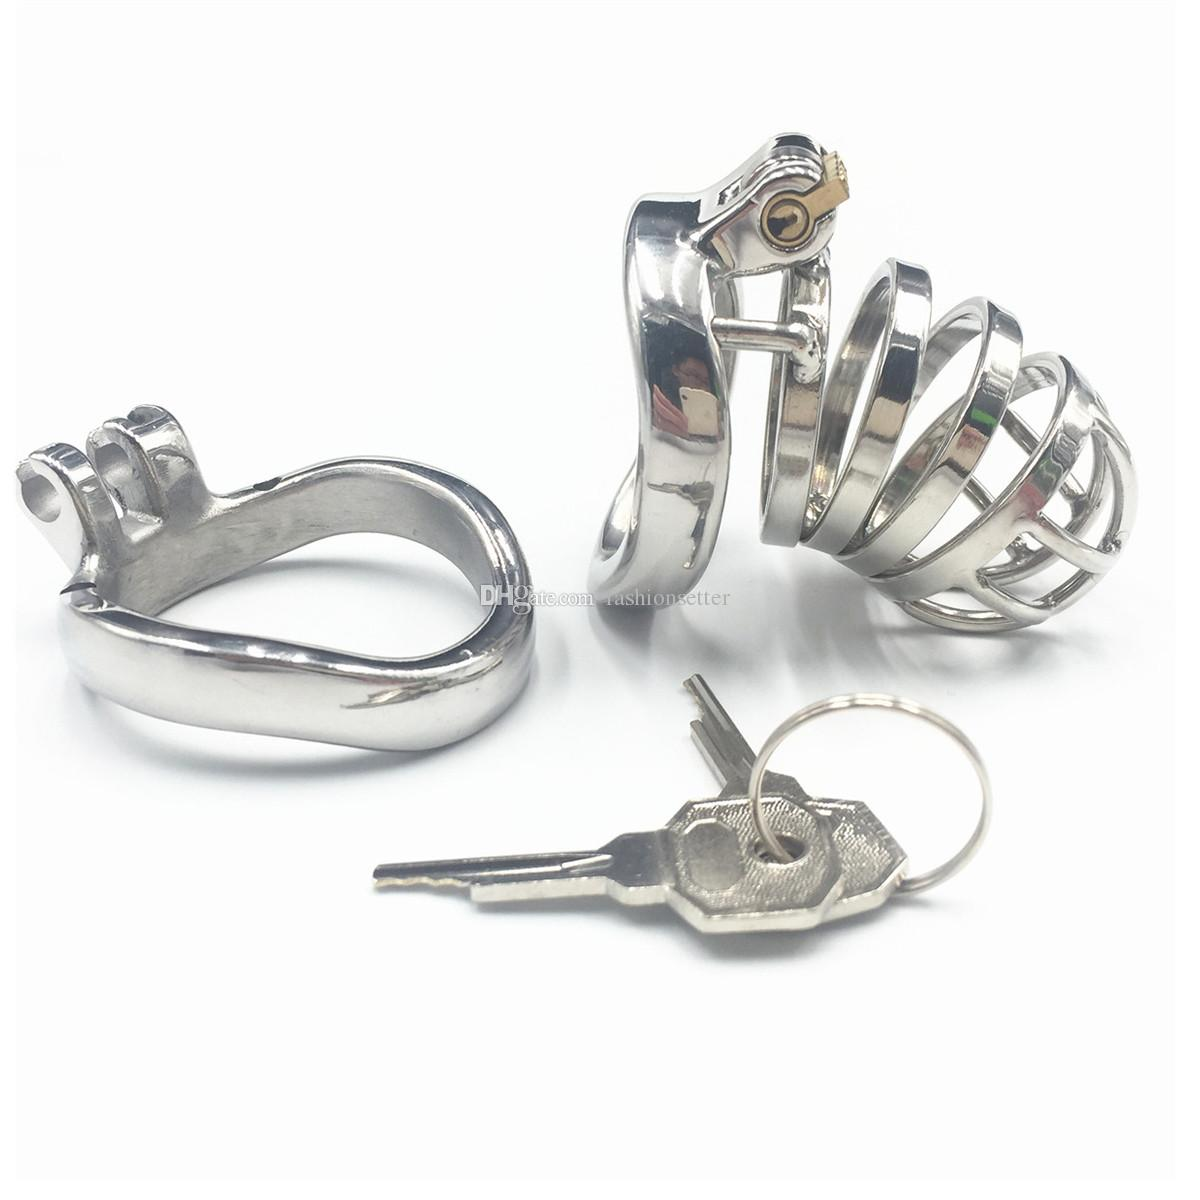 Easy to pee design device full length 65mm metal cock cage with extra 45mm base ring 304# stainless steel chastity devices for men